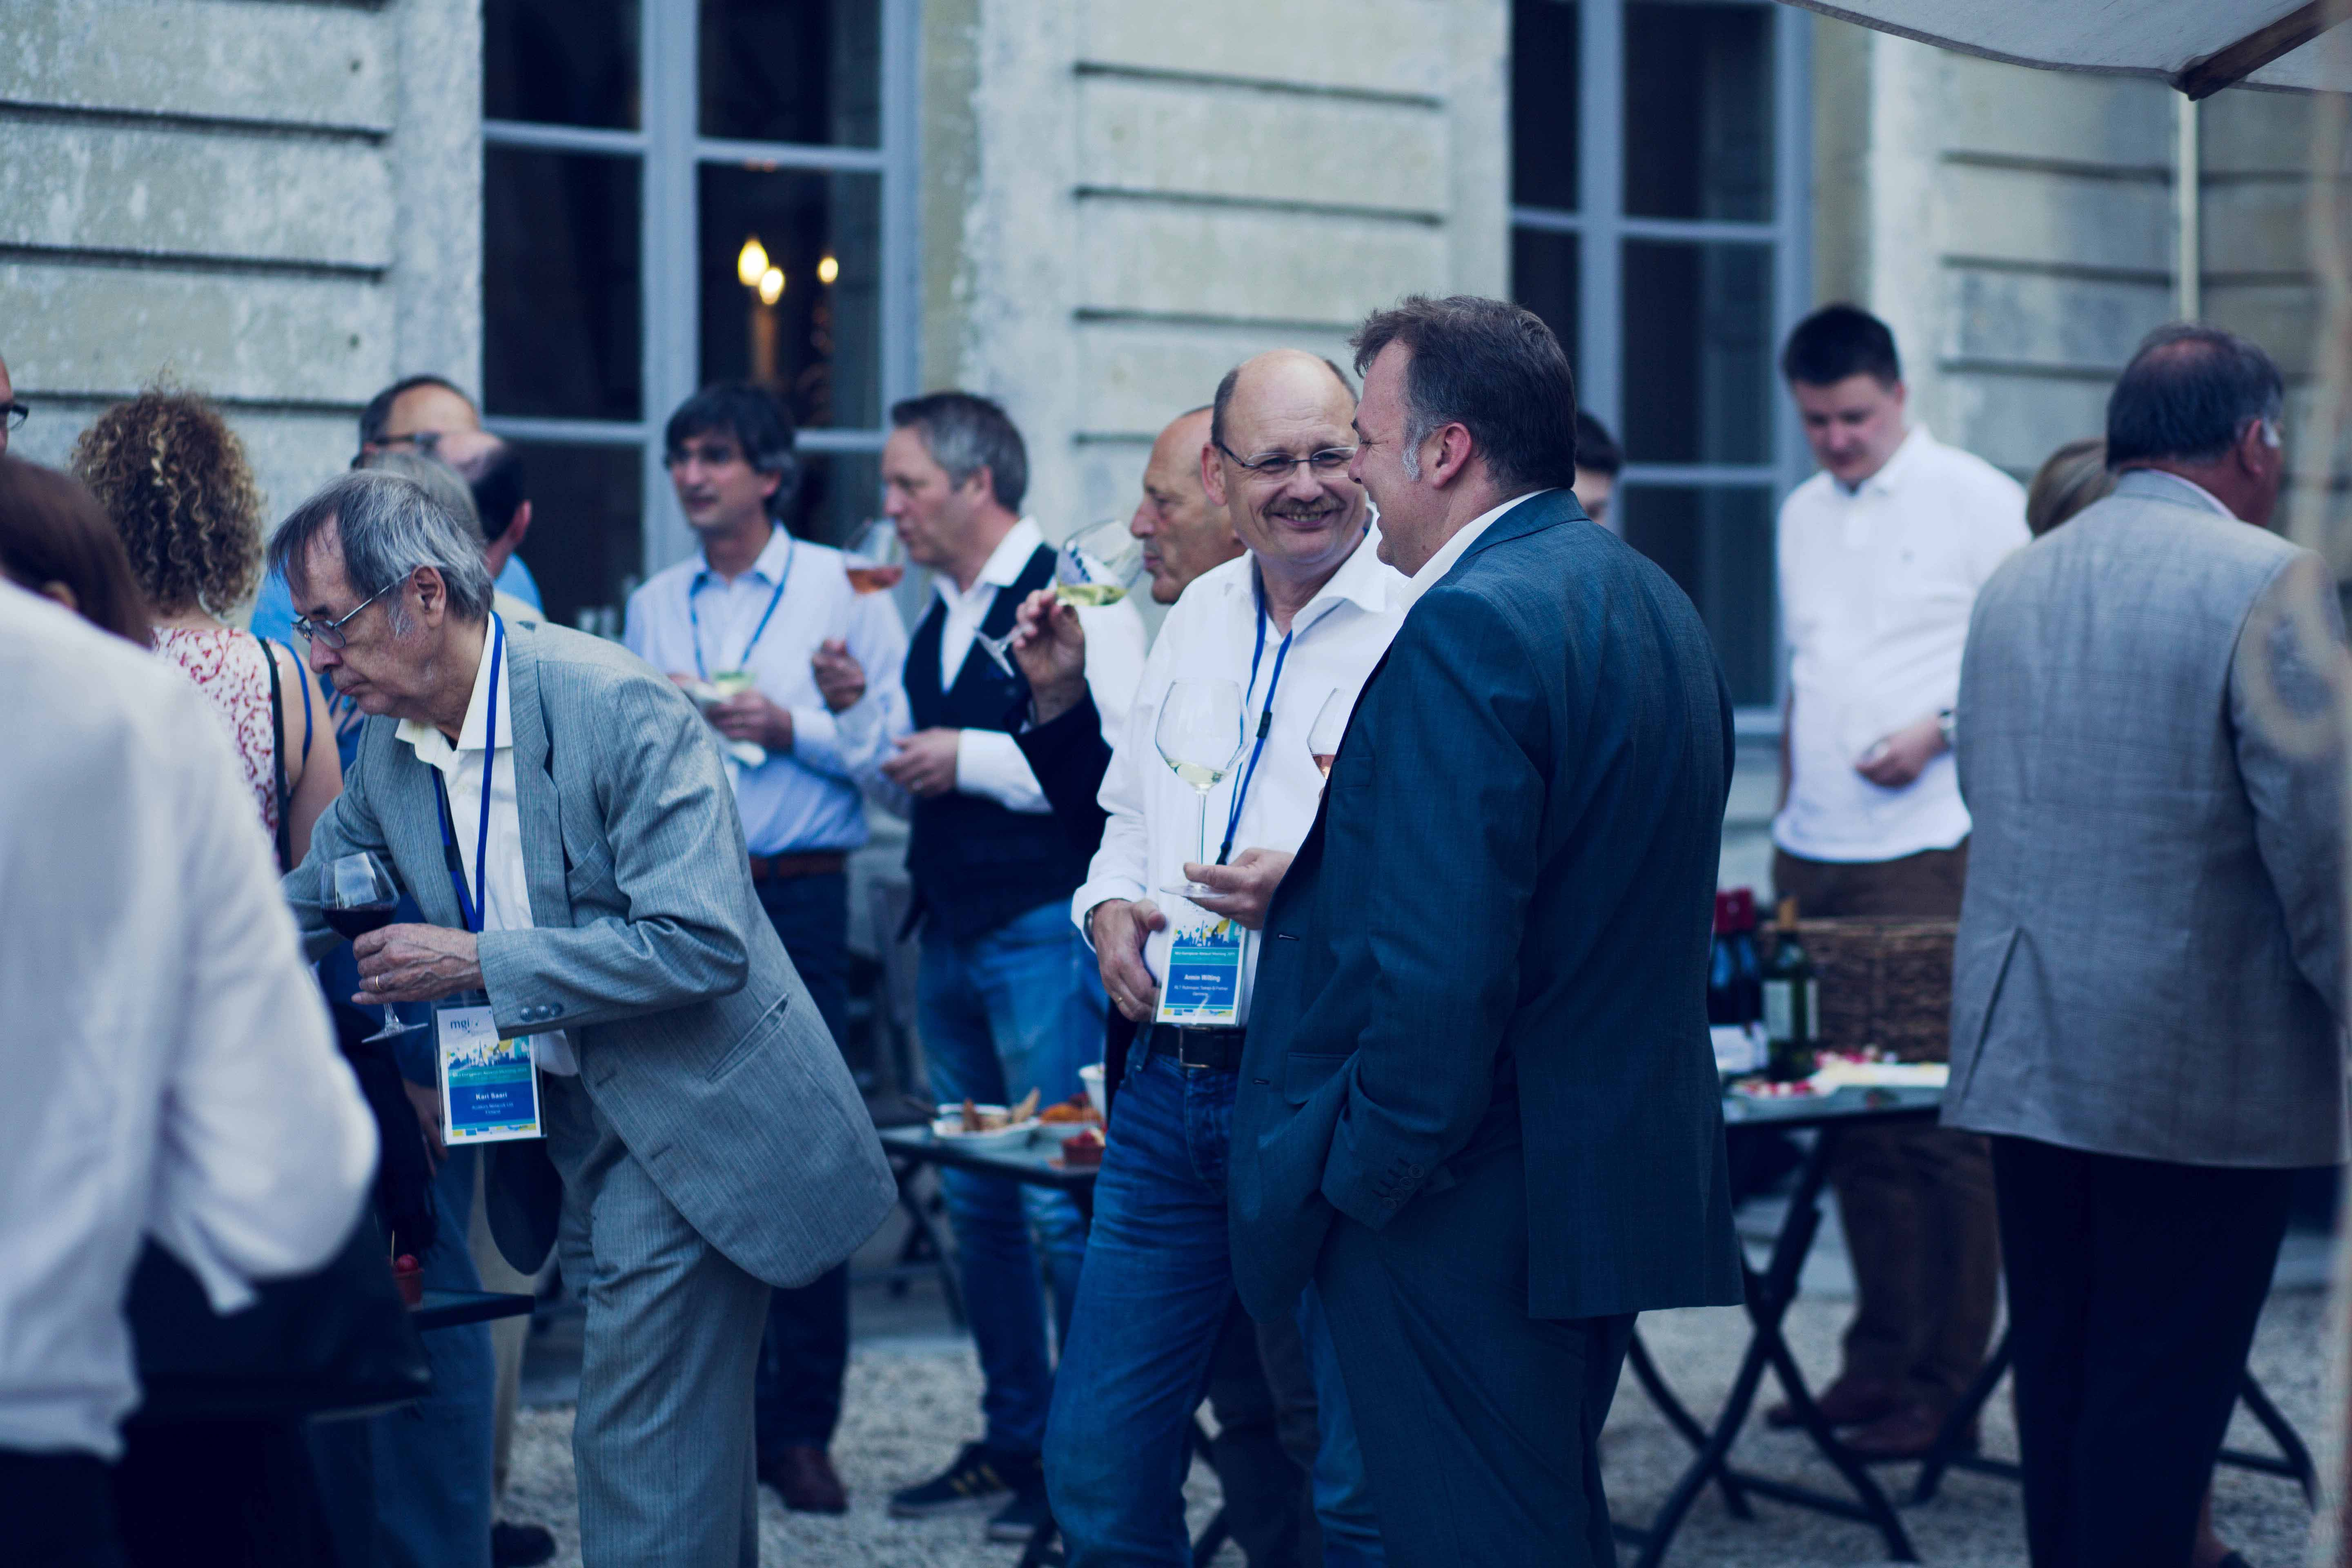 MGI World MGI Worldwide Europe Area Meeting 2015, Le Grand Mello, delegates outdoor drinks image 5